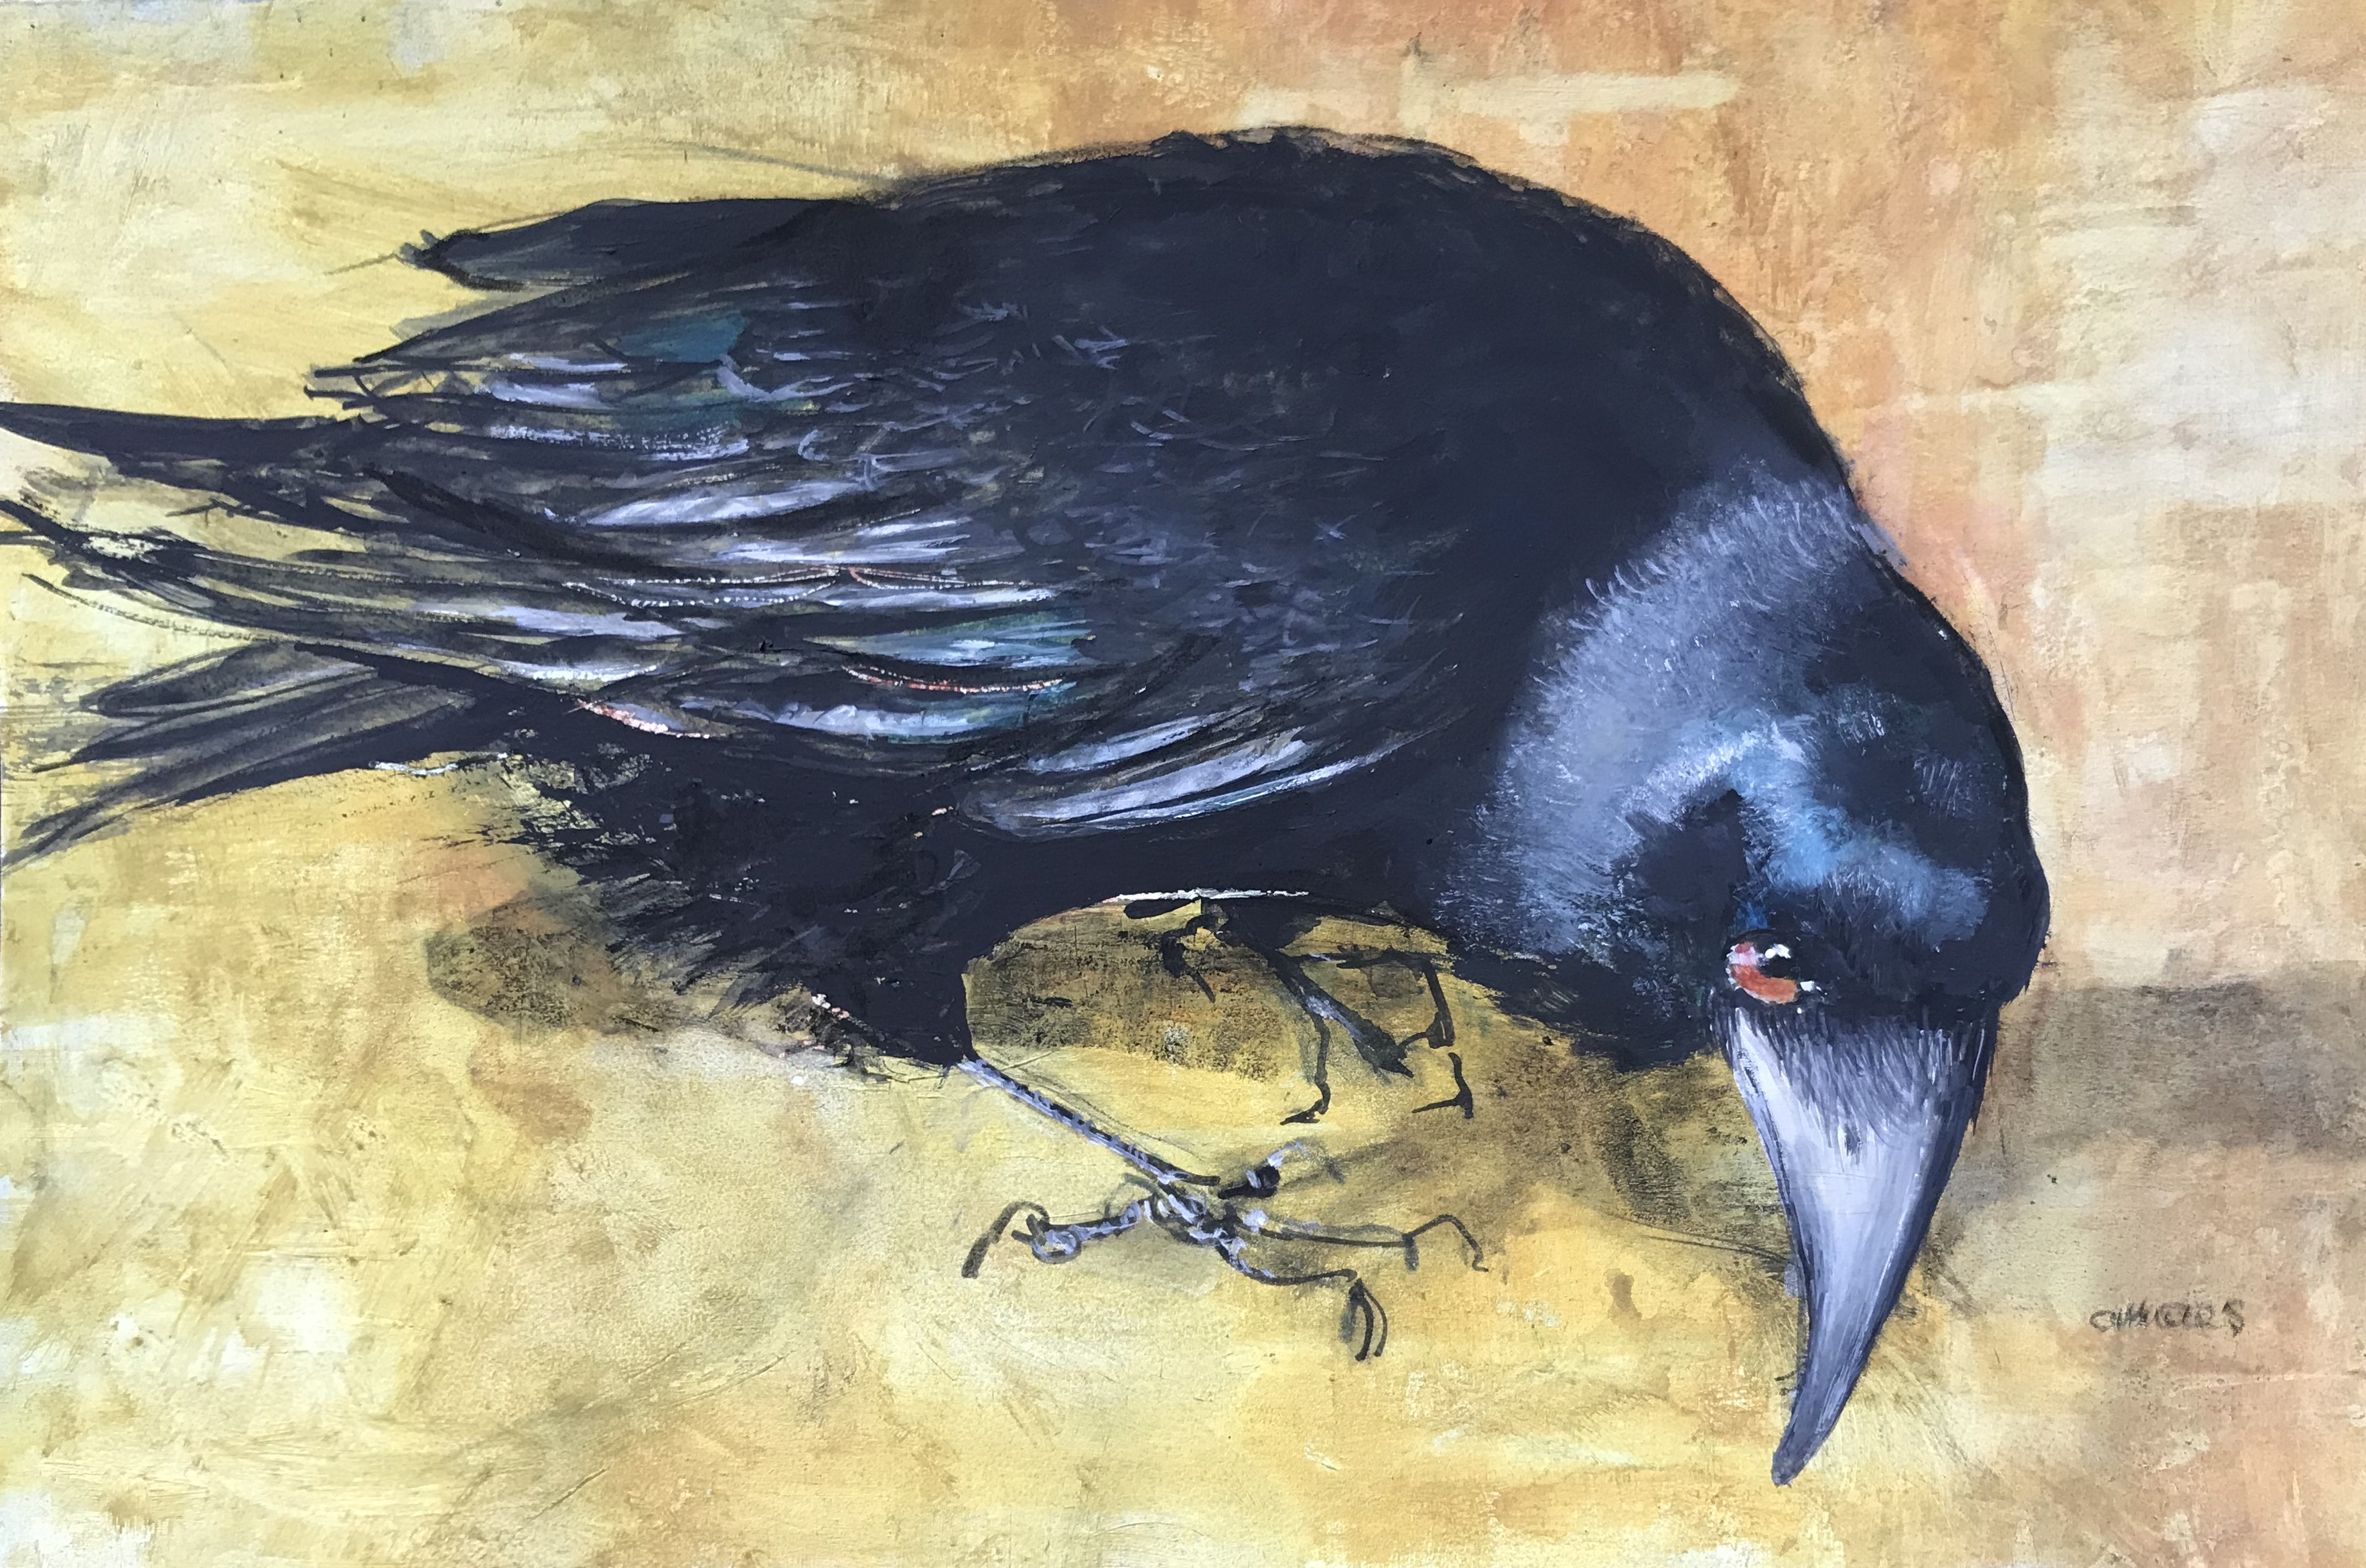 216-corvidae/mixed media 30x44cm